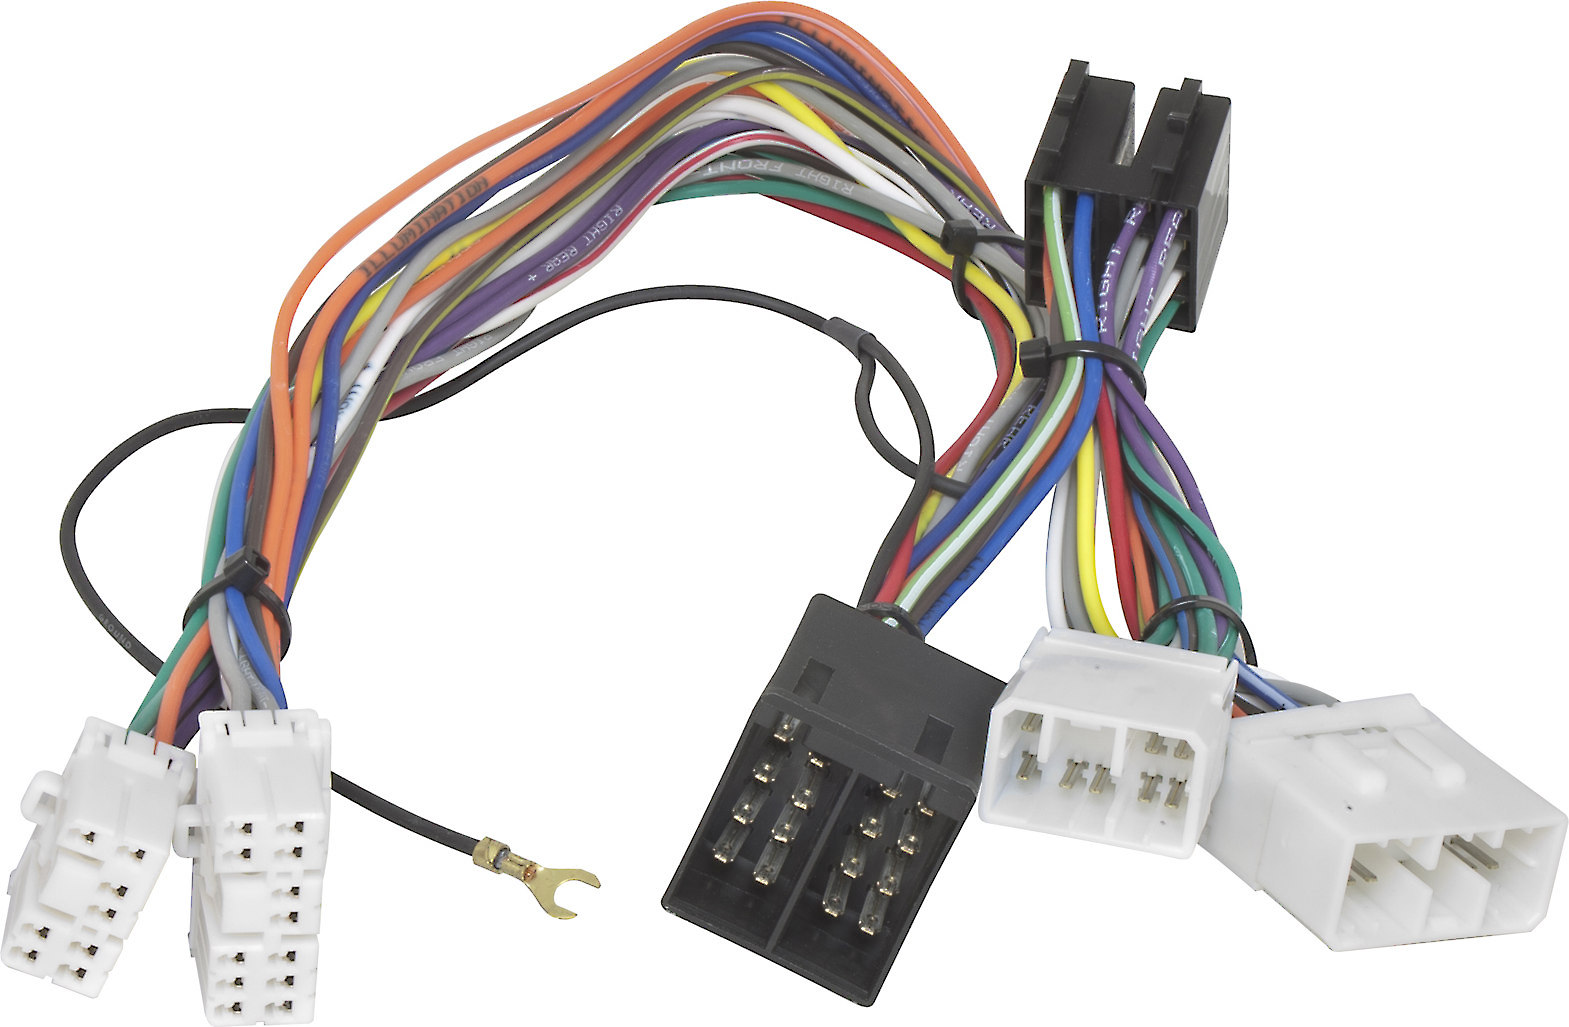 hight resolution of mazda bluetooth wiring harness connects parrot bluetooth cell phone kits to the factory stereo in select 1989 2001 mazda and 2003 ford vehicles at